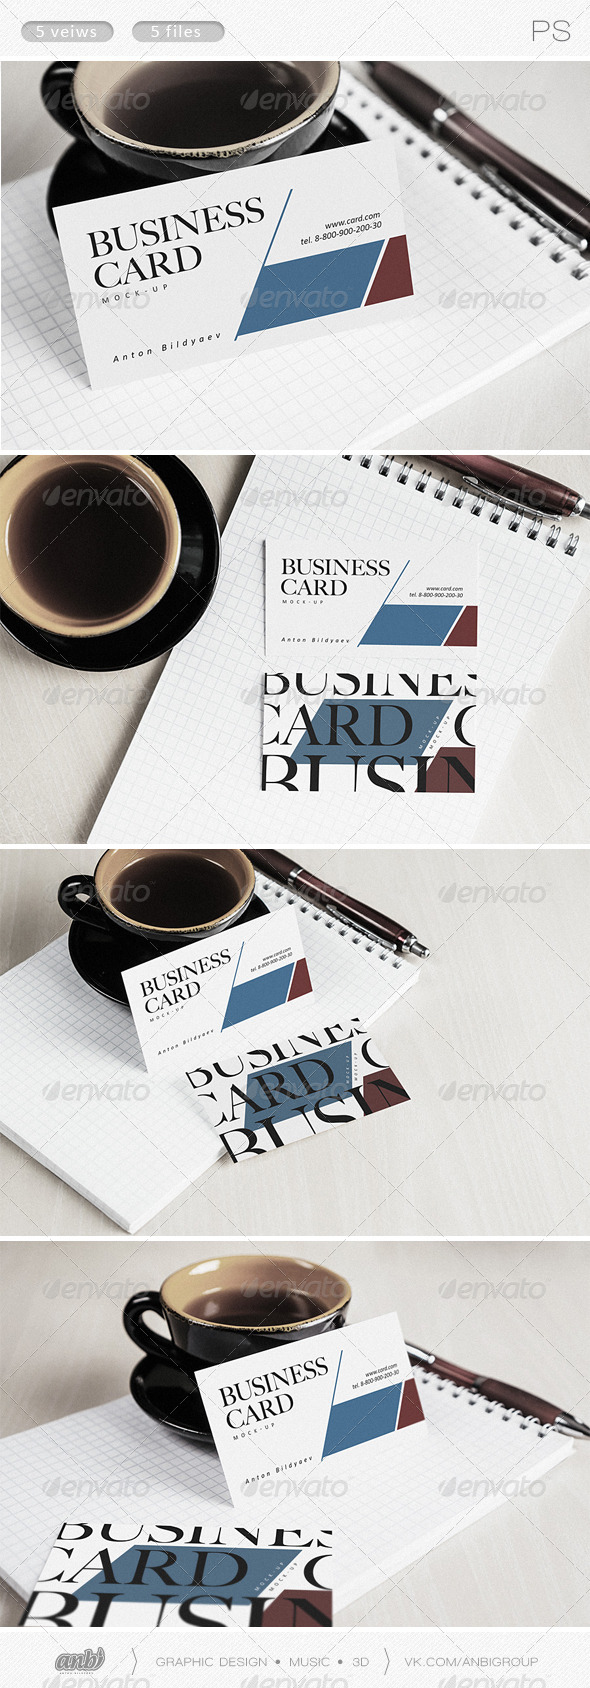 GraphicRiver Business Card Mock-Up II 8083339